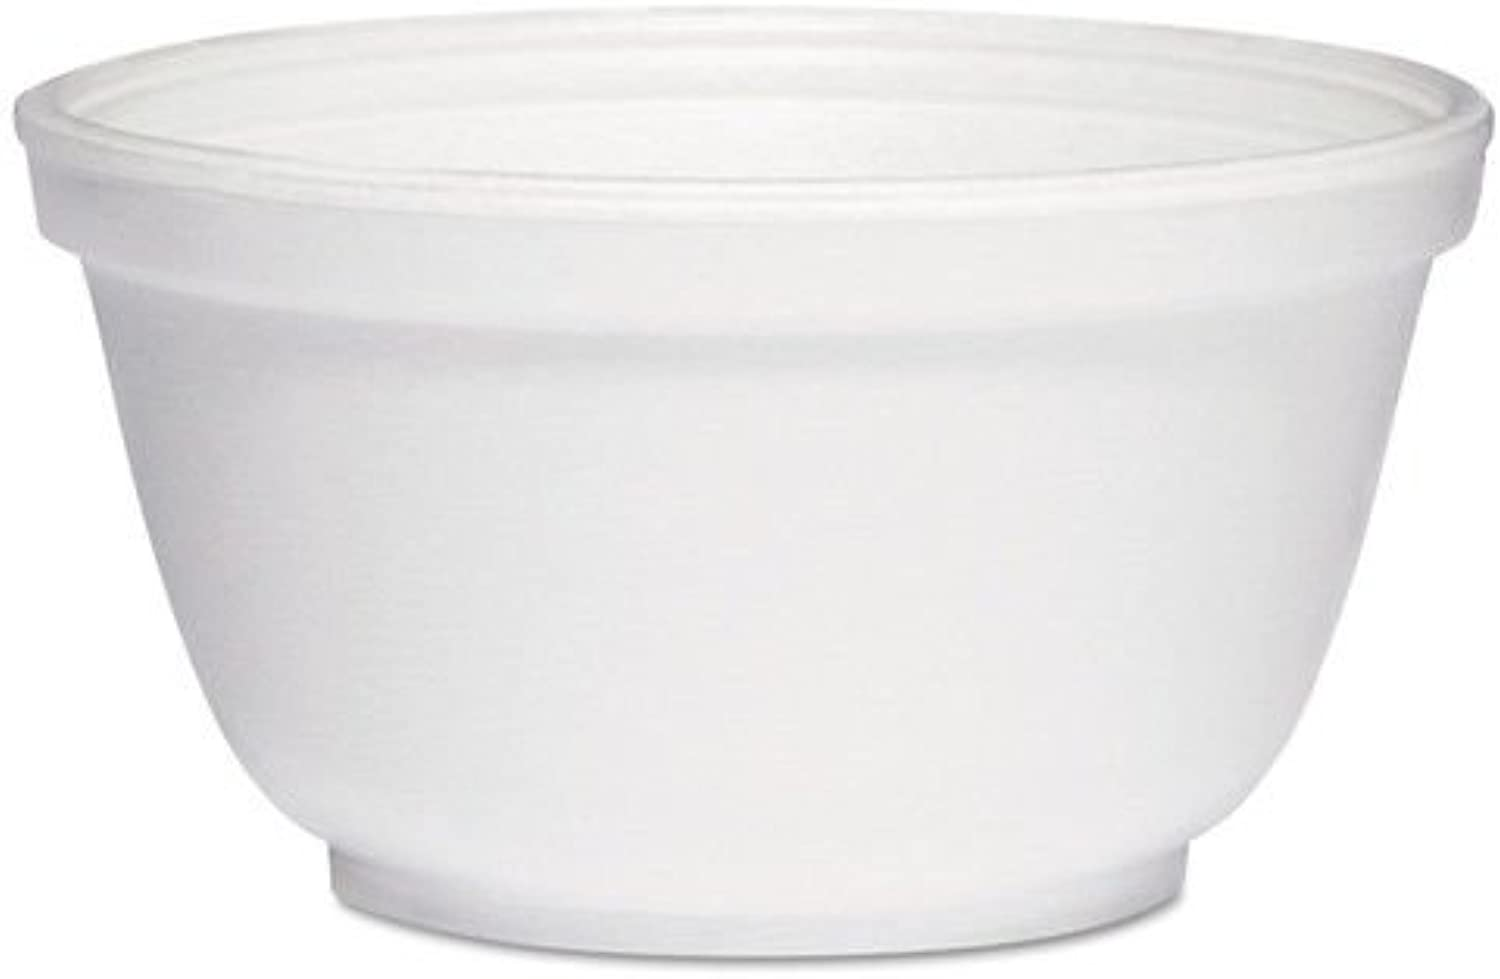 Dart 10B20 10 oz Foam Bowl (Case of 1000)